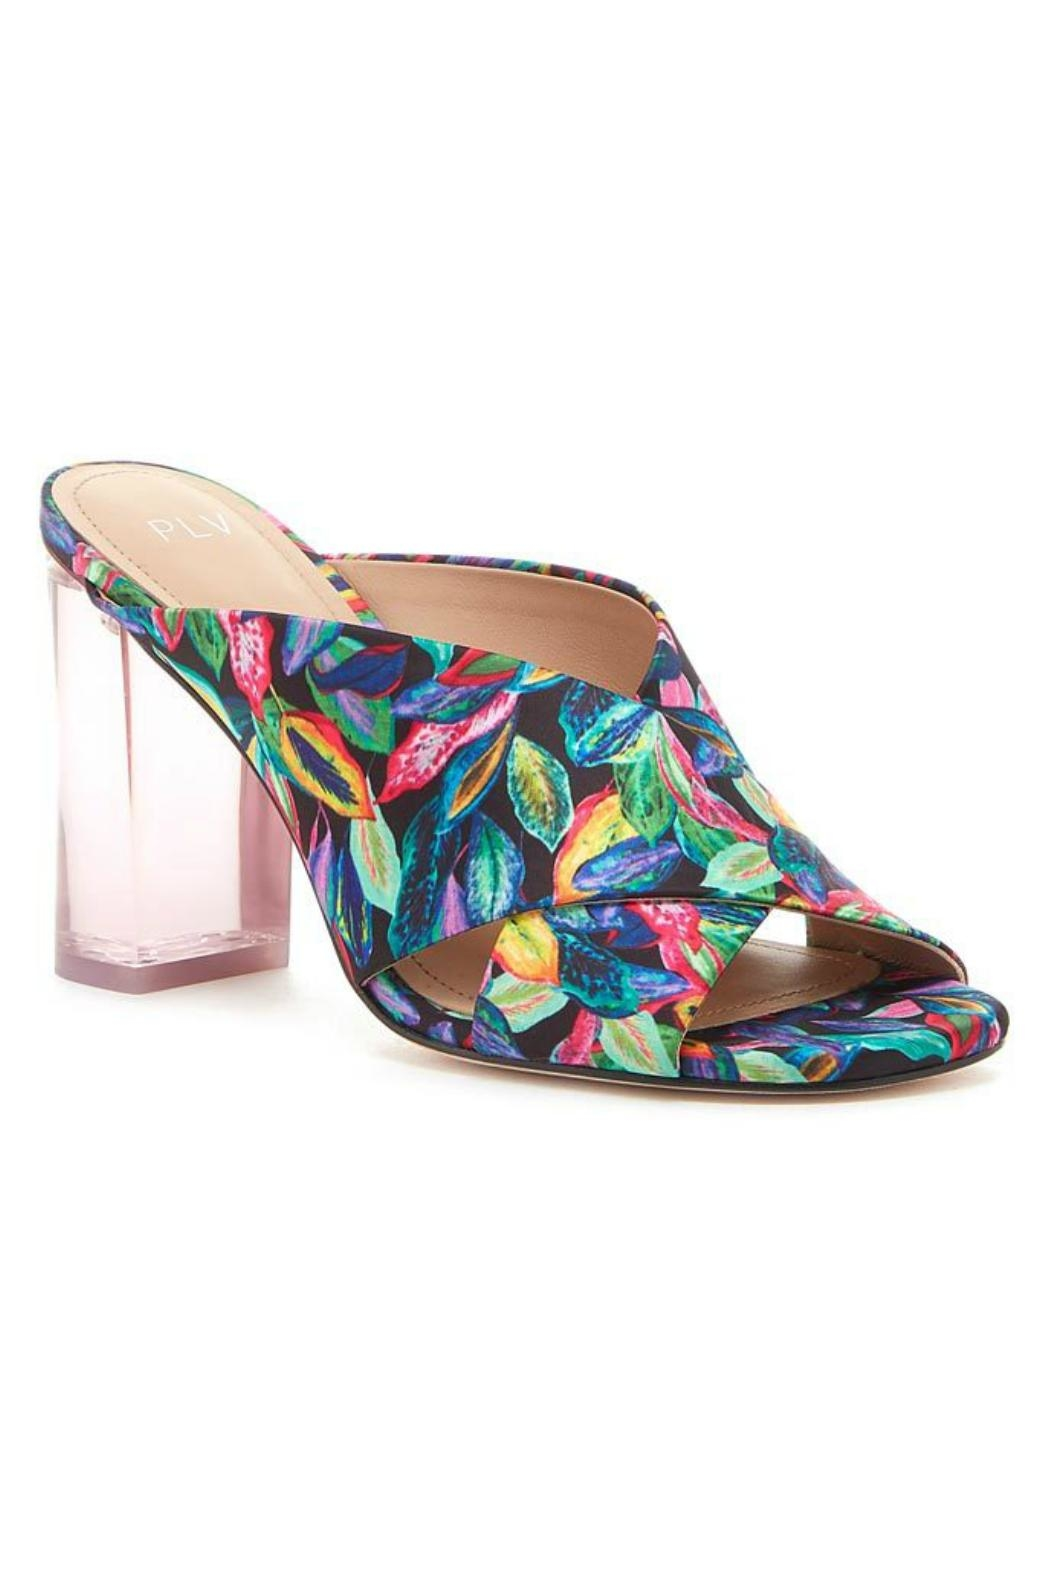 ea5b9cb281b Pour La Victoire Harley Tropic from New Hampshire by Stiletto Shoes ...